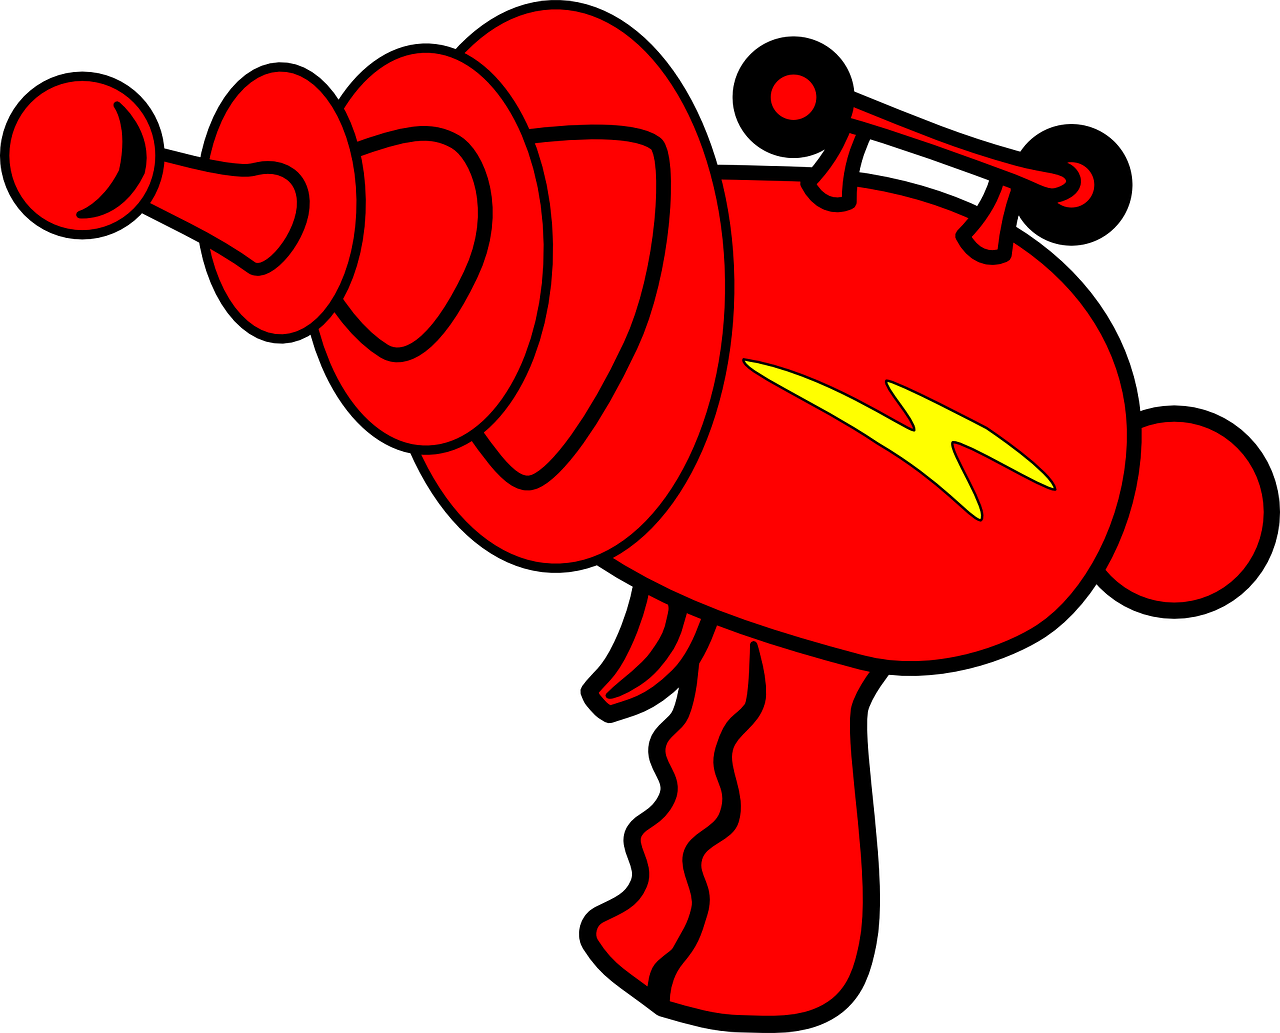 Clipart gun toy. Laser ray png image